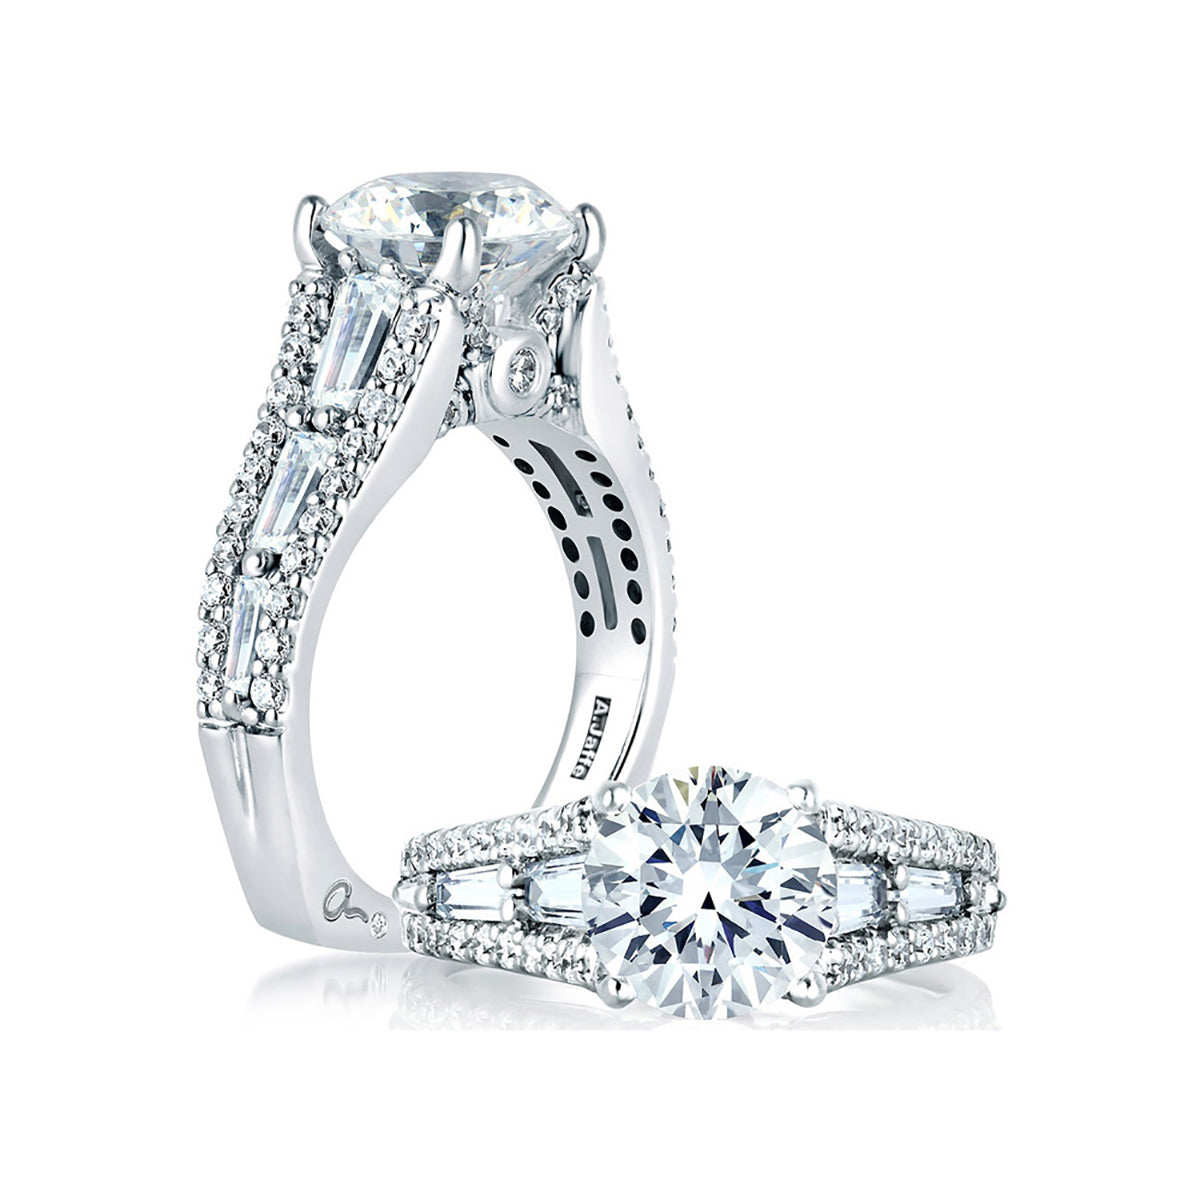 A.Jaffe Round Engagement Ring with Baguettes at Sides MES154/115